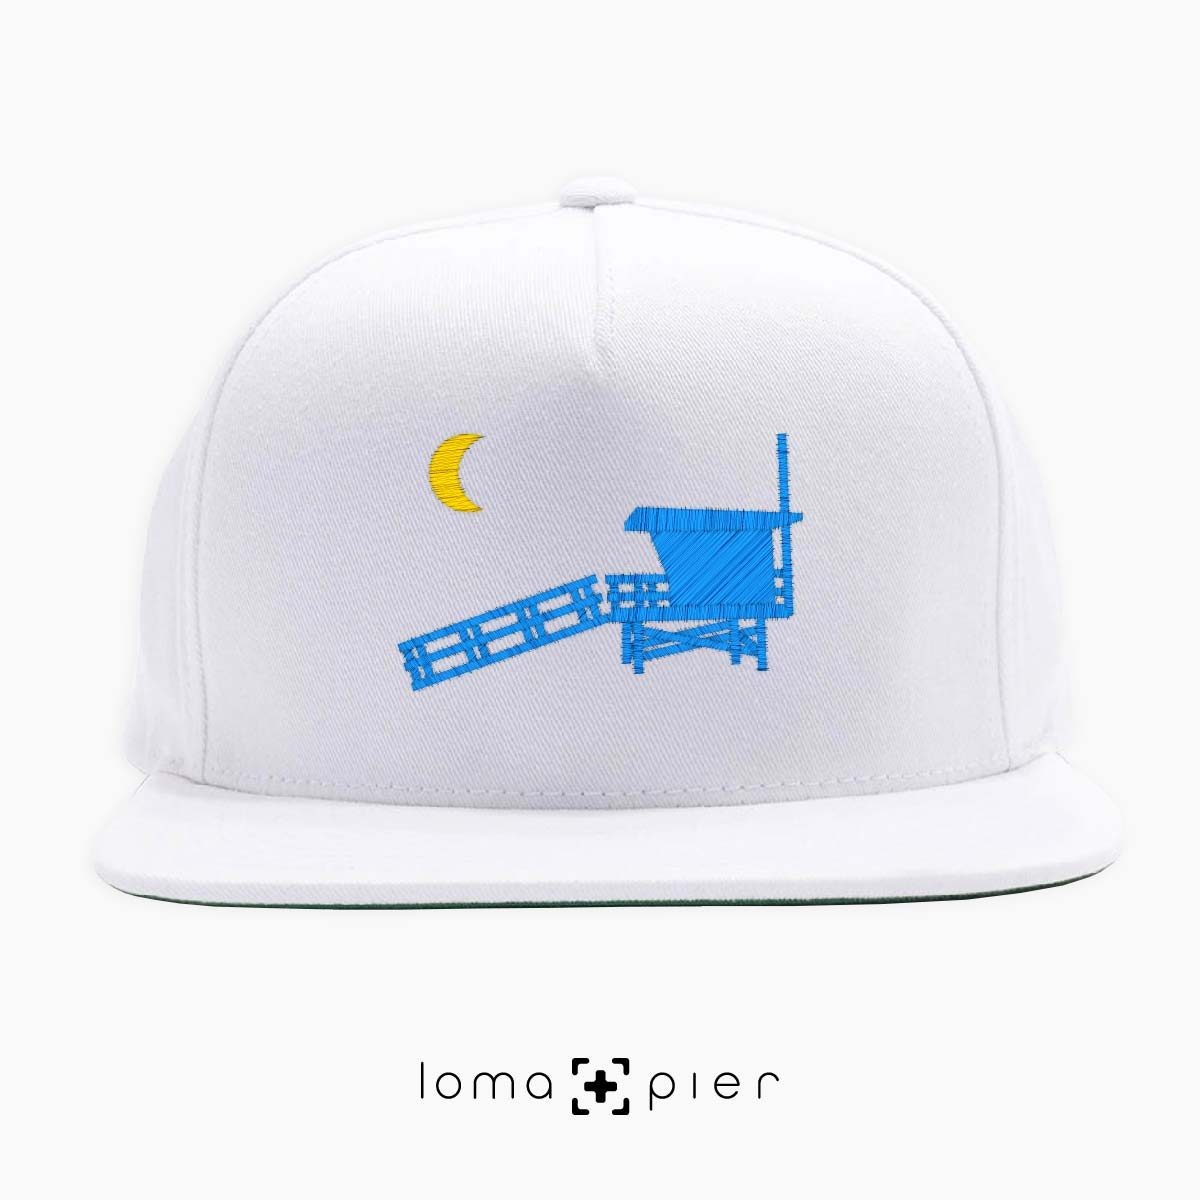 hermosa beach LIFEGUARD TOWER icon embroidered on a white classic snapback hat by loma+pier hat store